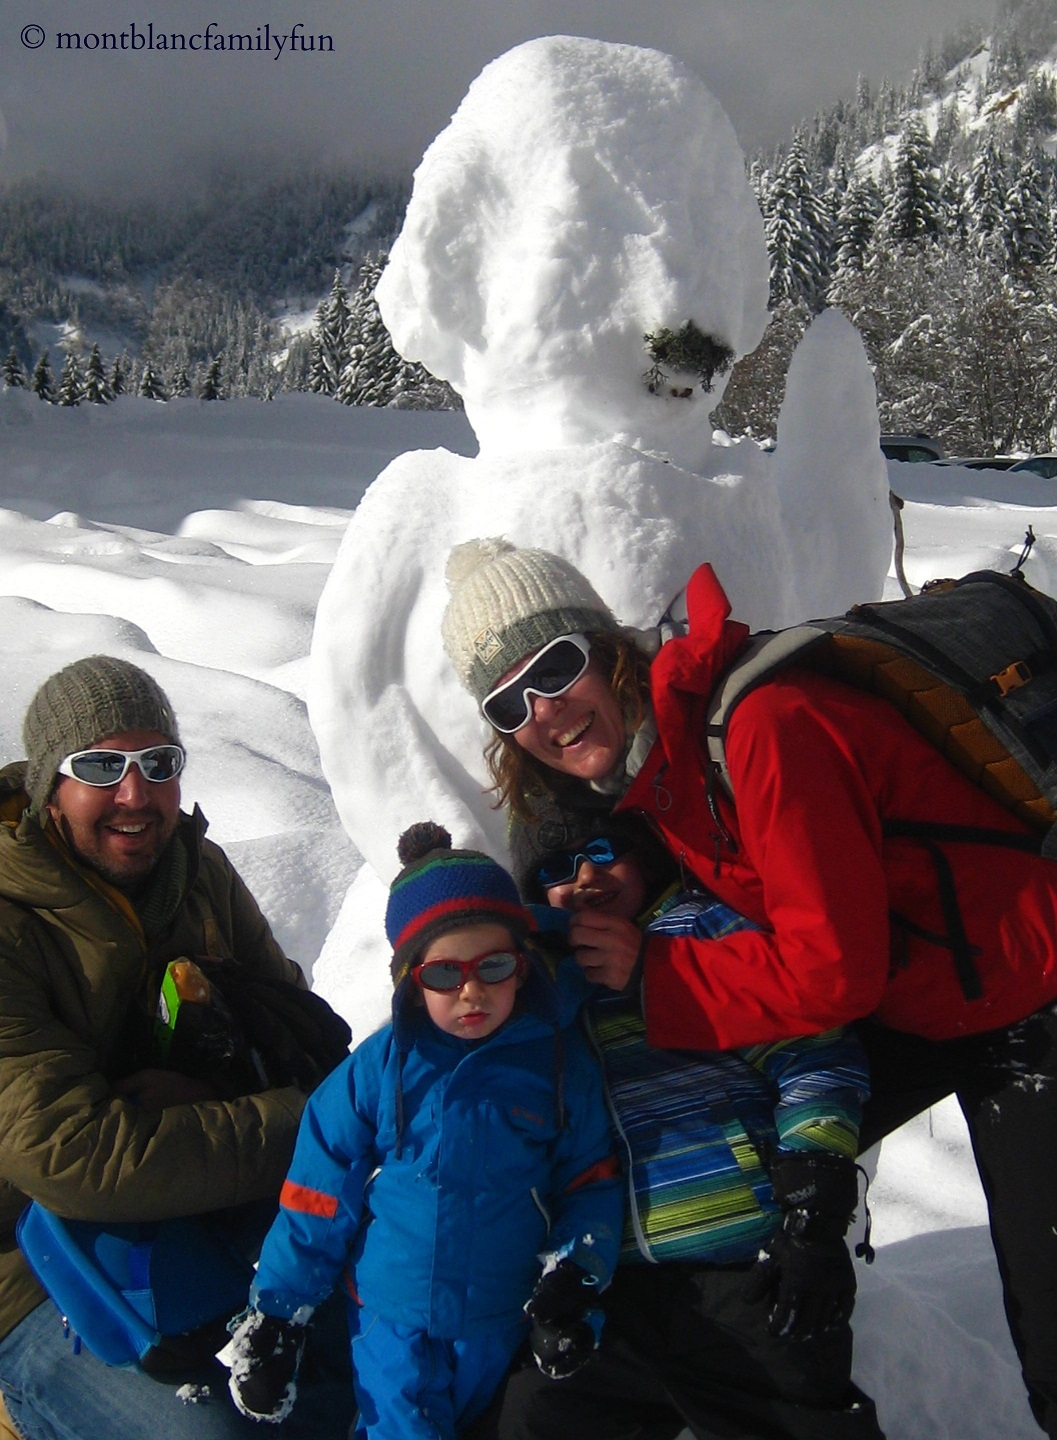 mont-blanc-family-fun-in-the-alps-winter